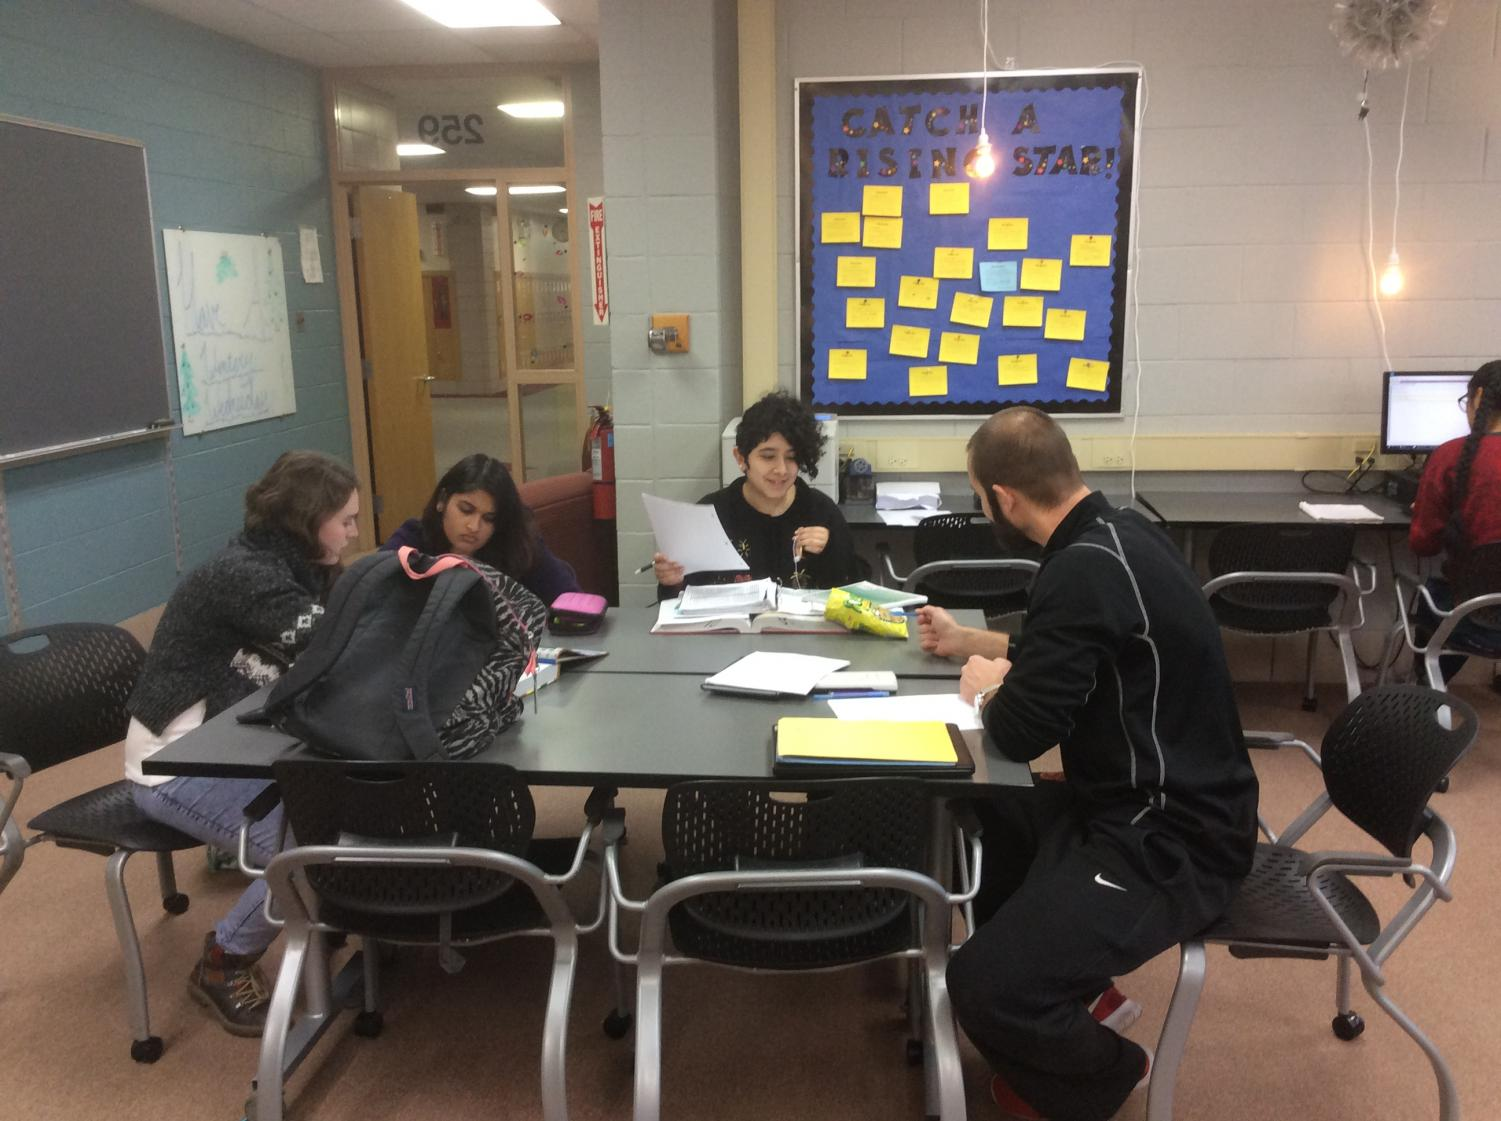 Mr. Rafaj works with students after school in the AP resource room